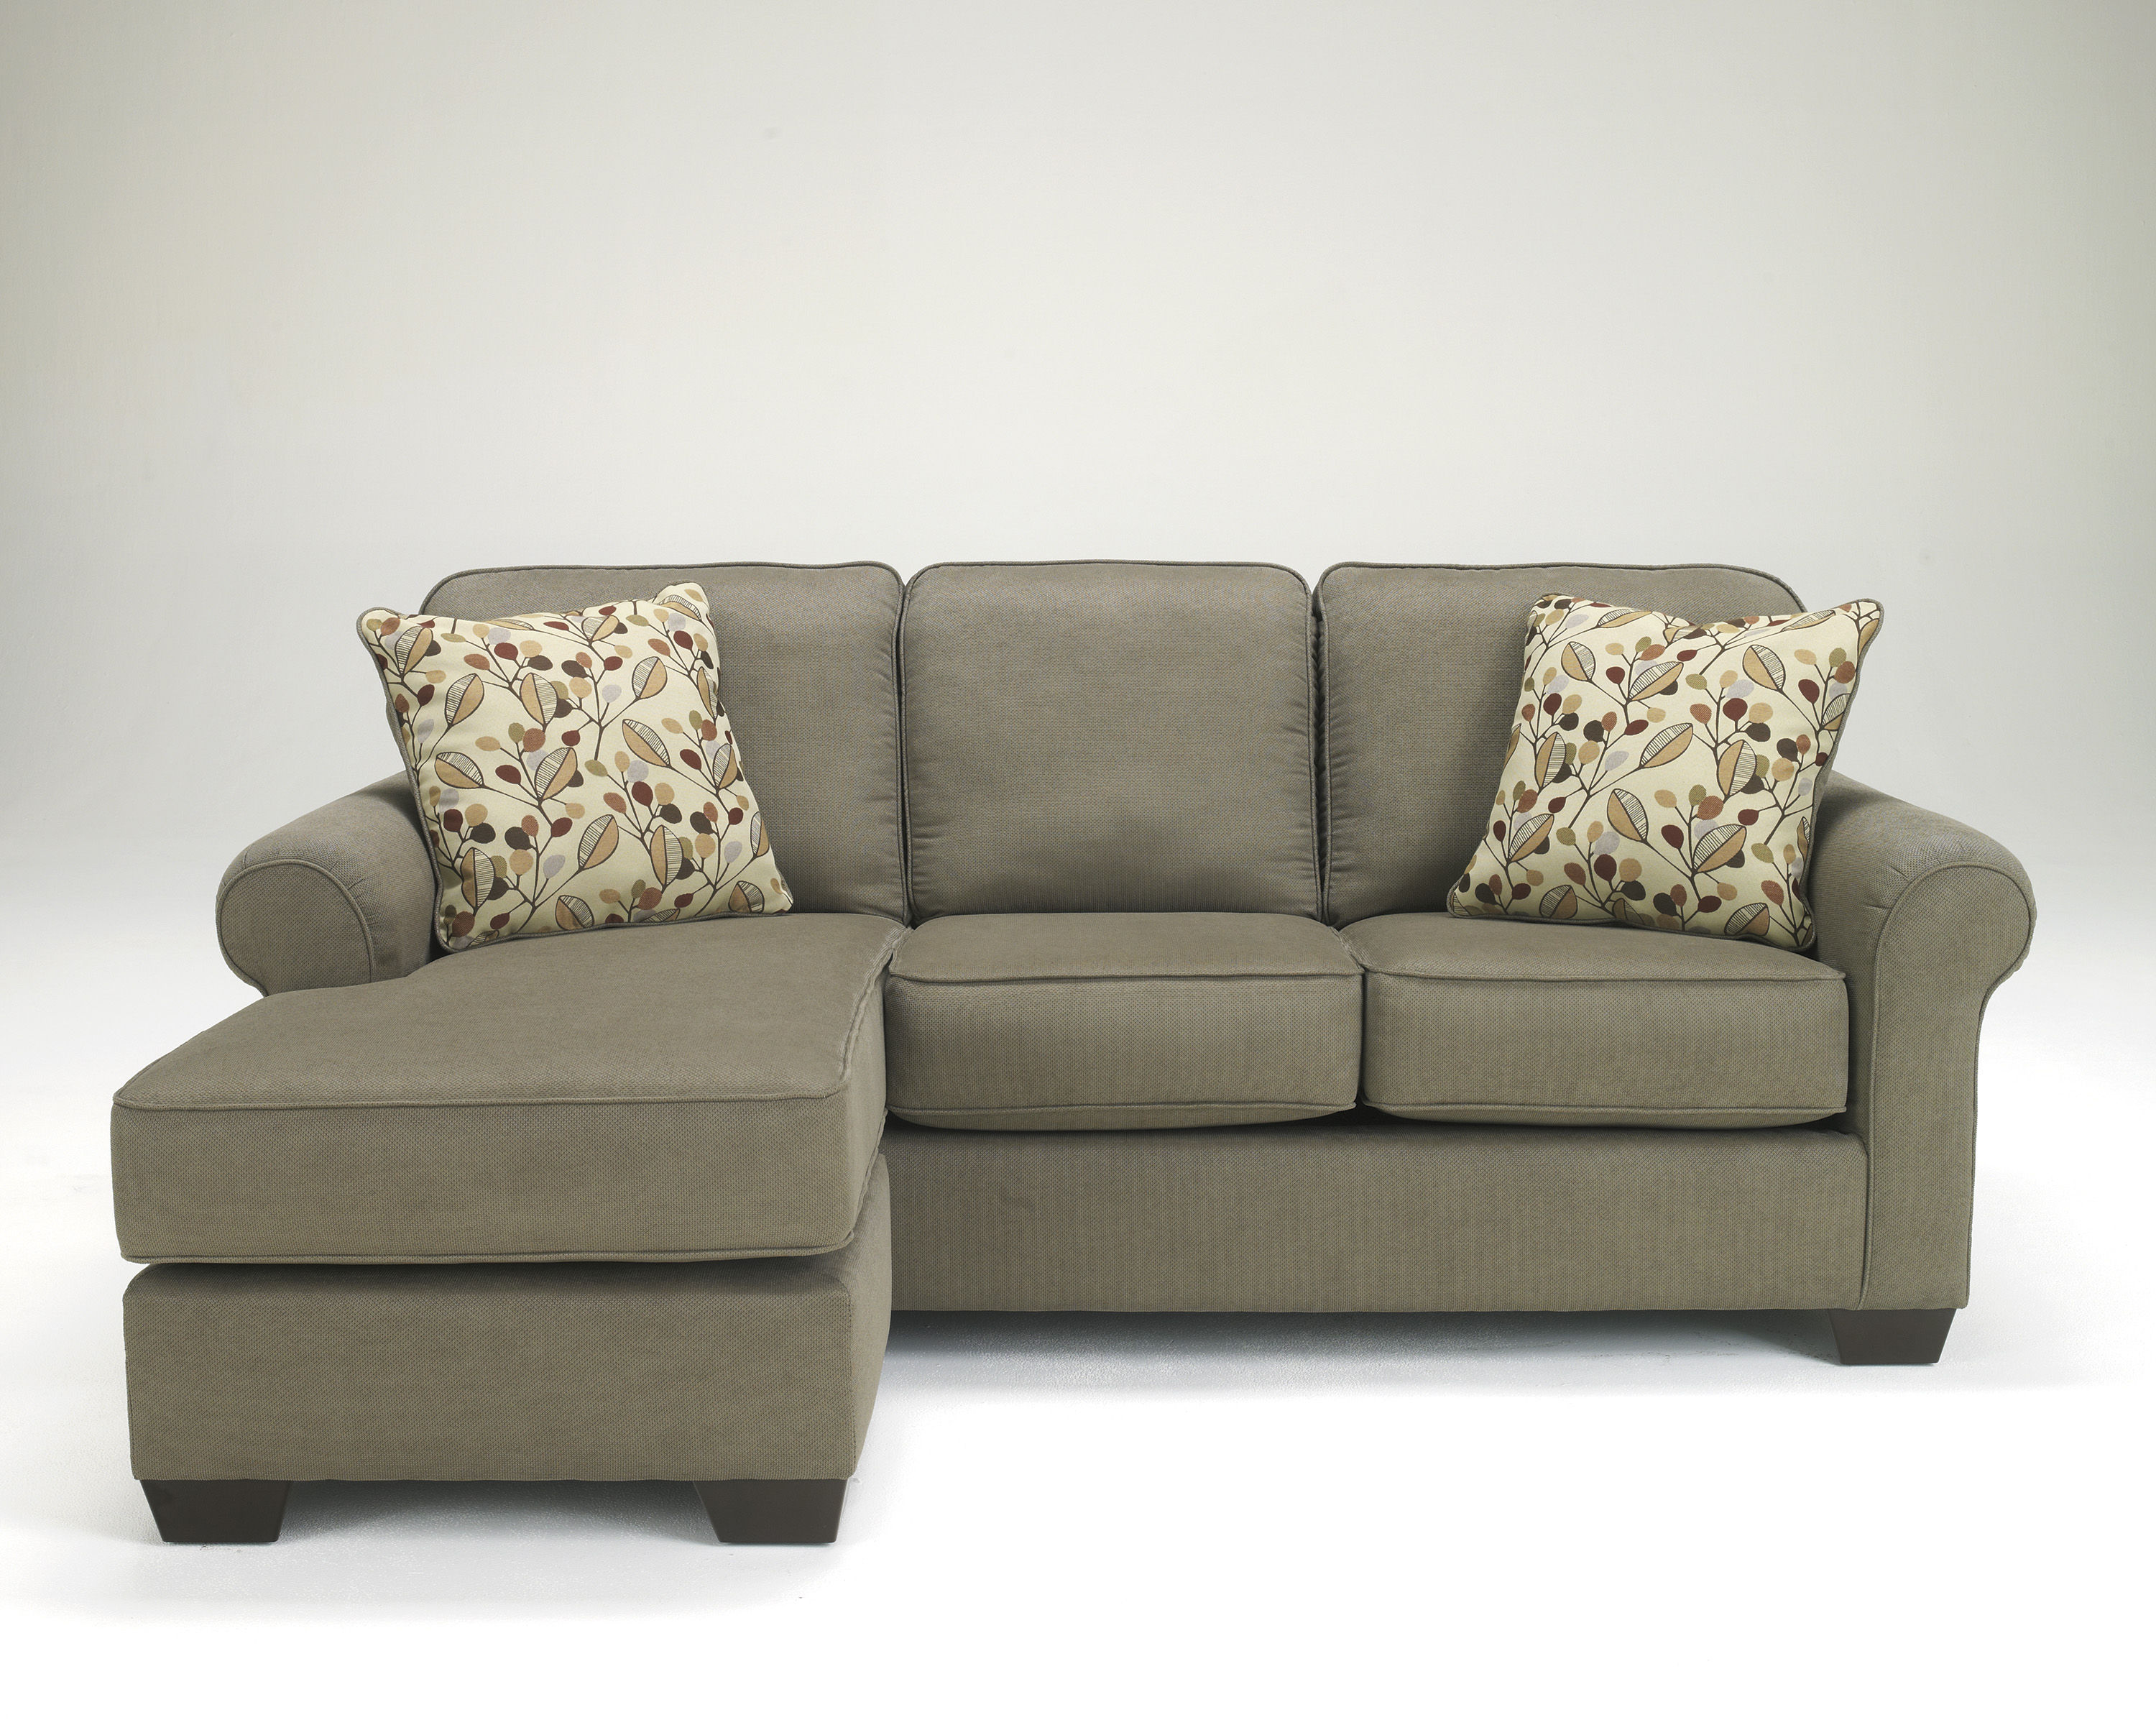 Benchcraft danely dusk sofa chaise polyester sectional the classy home Loveseat chaise sectional